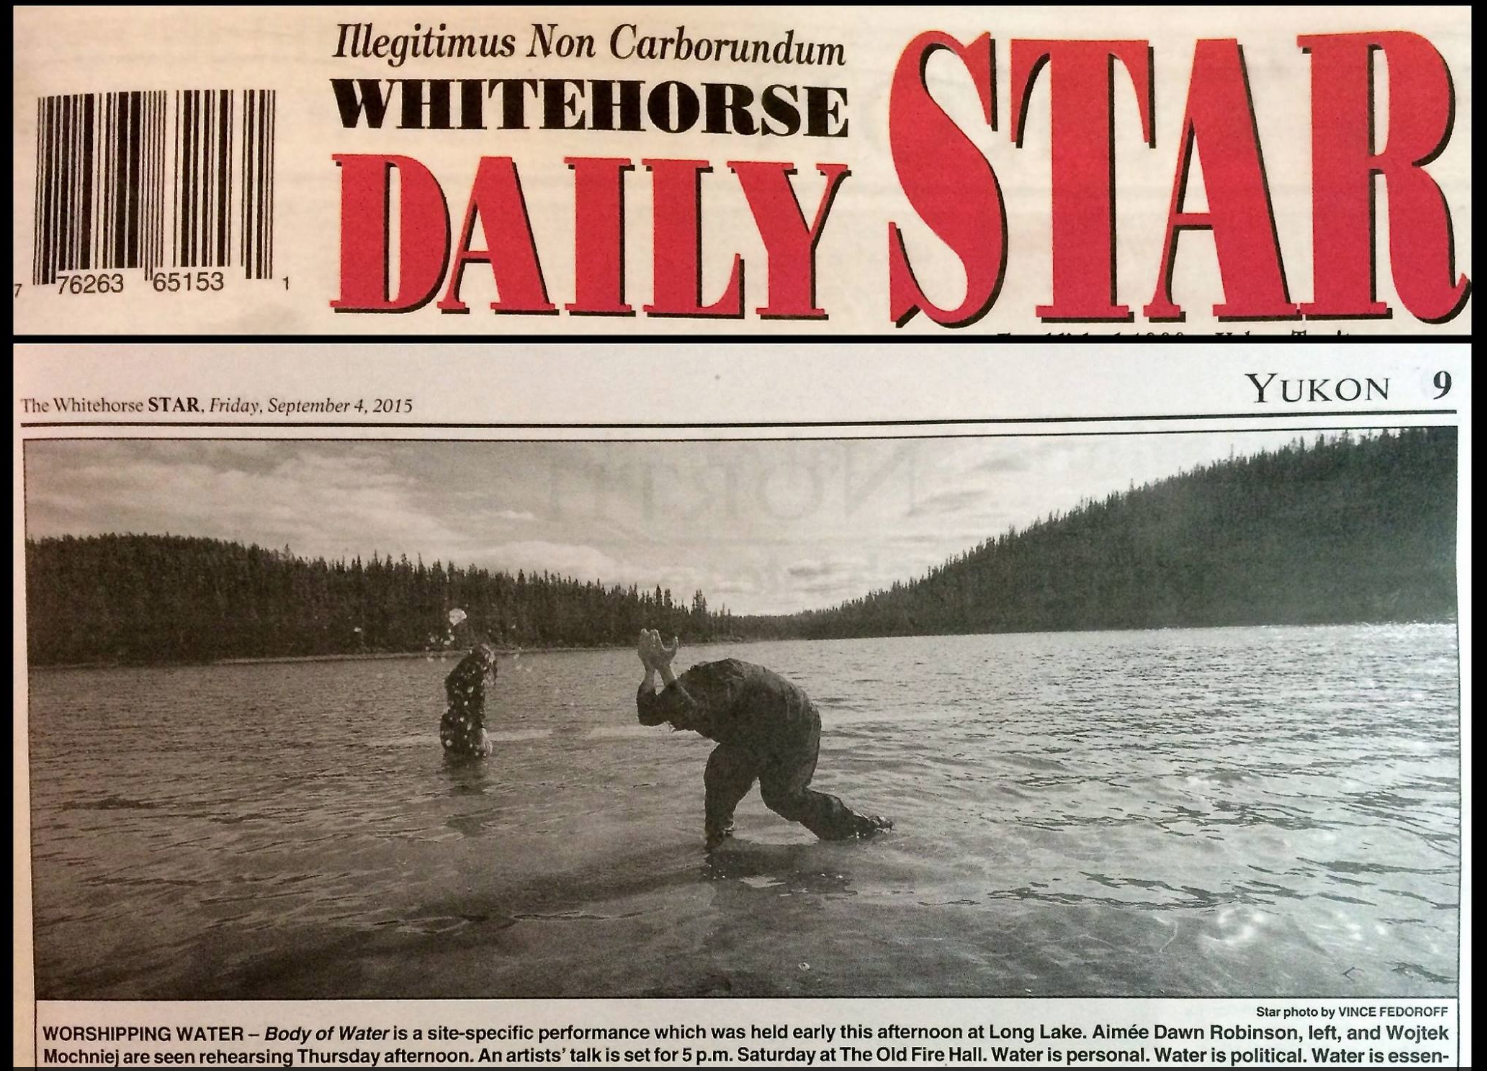 Cover of the Whitehorse Star